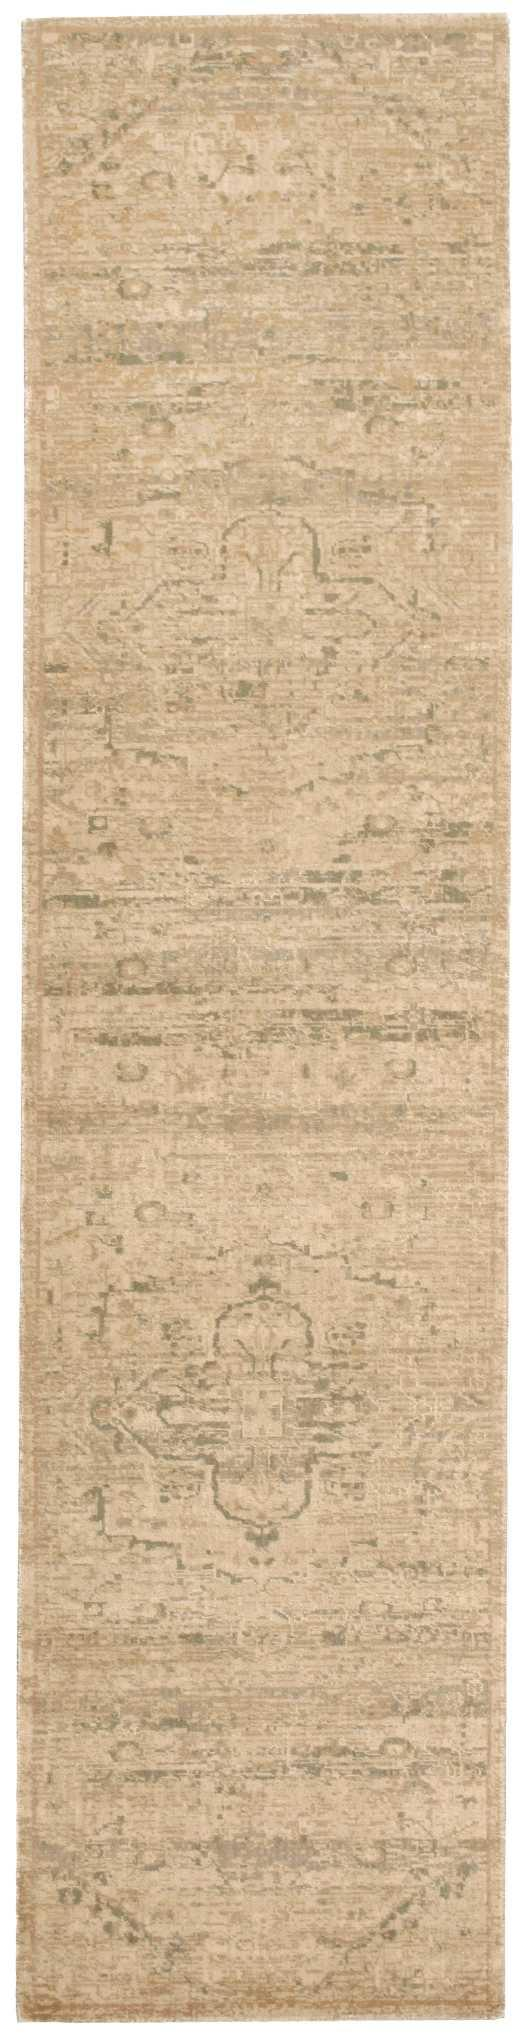 Nourison SILK ELEMENTS SKE14 SAND Area Rug